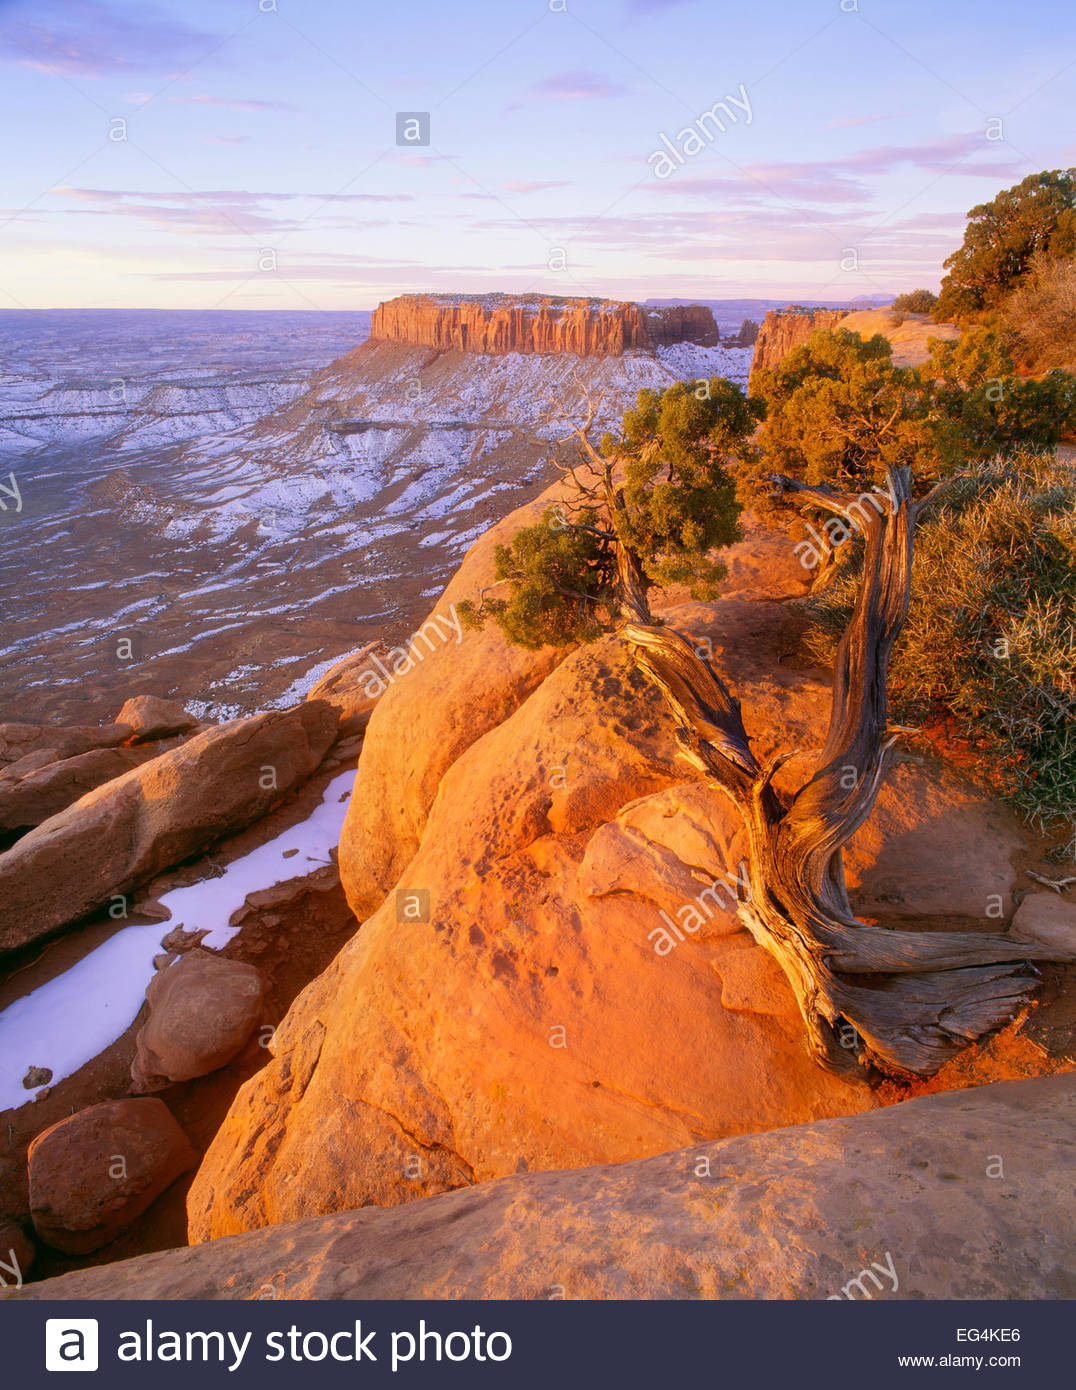 Winter sunrise at Grandview Point.  Island In The Sky.  Canyonlands National Park, Utah. - Stock Image